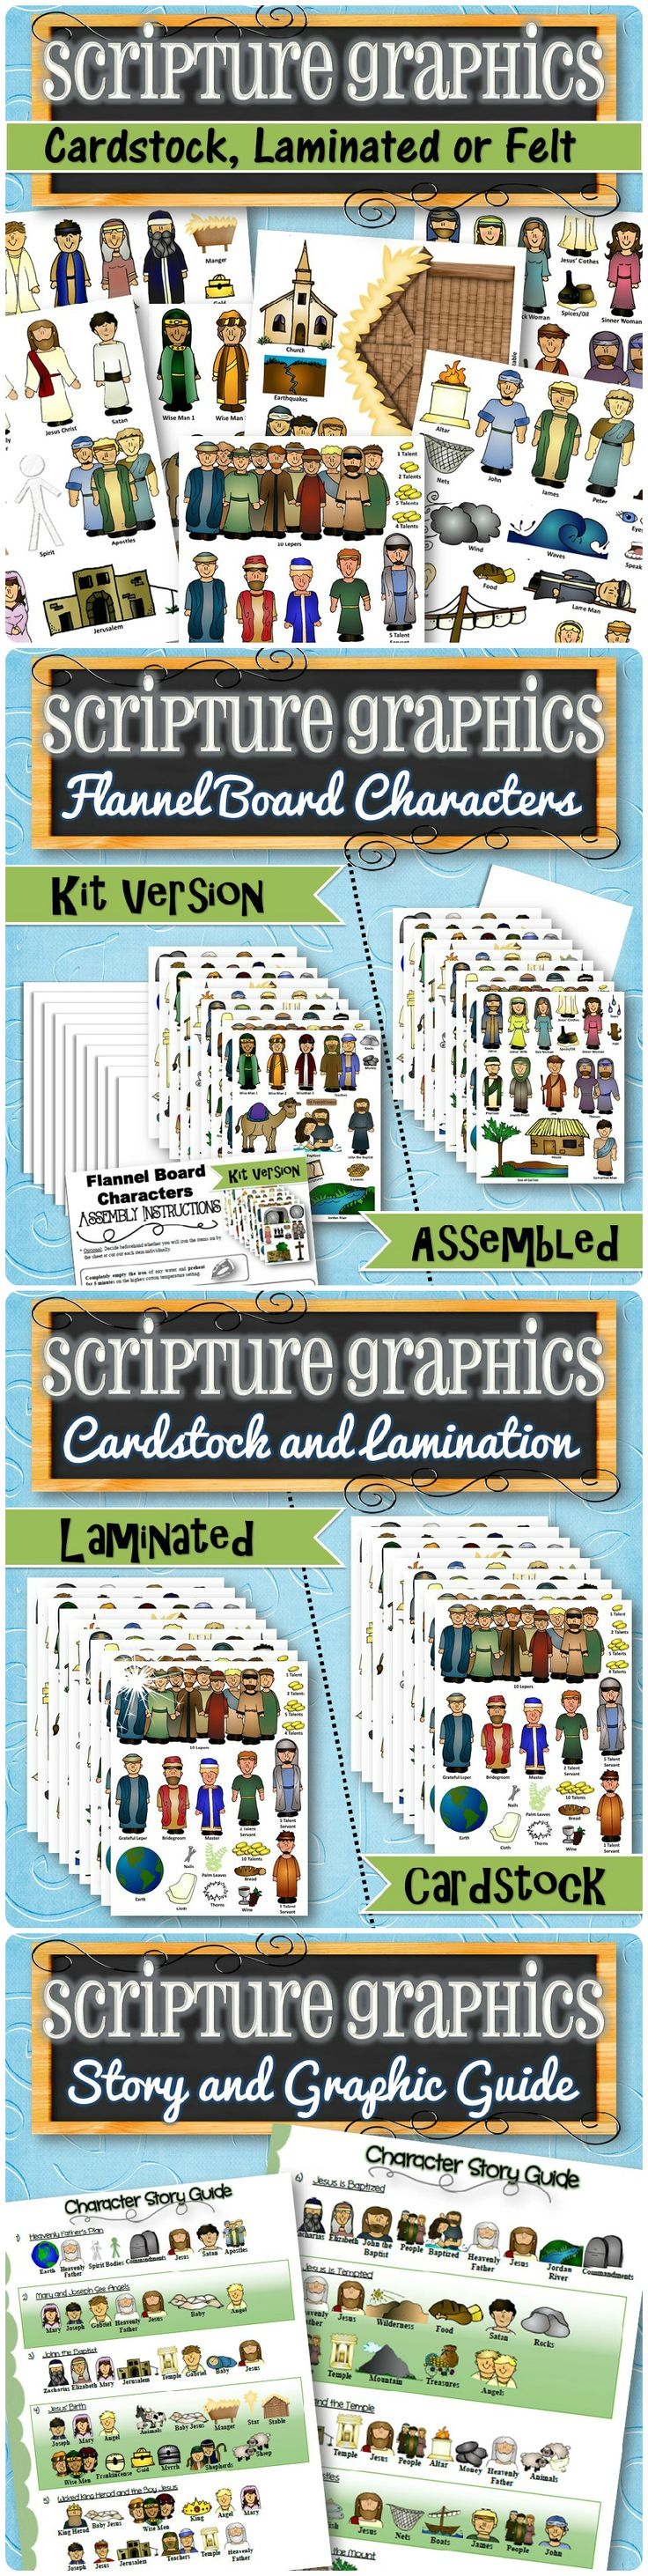 Printed, laminated or flannel characters and items to go along with the New Testament Bible and/or Book of Mormon! Each item comes labeled and includes a Character Guide to identify the stories and their associated characters. Works great with any version of scriptures (standard, readers, study guides, etc.) and is great for teaching and quiet play time. Over 100 items in each set!